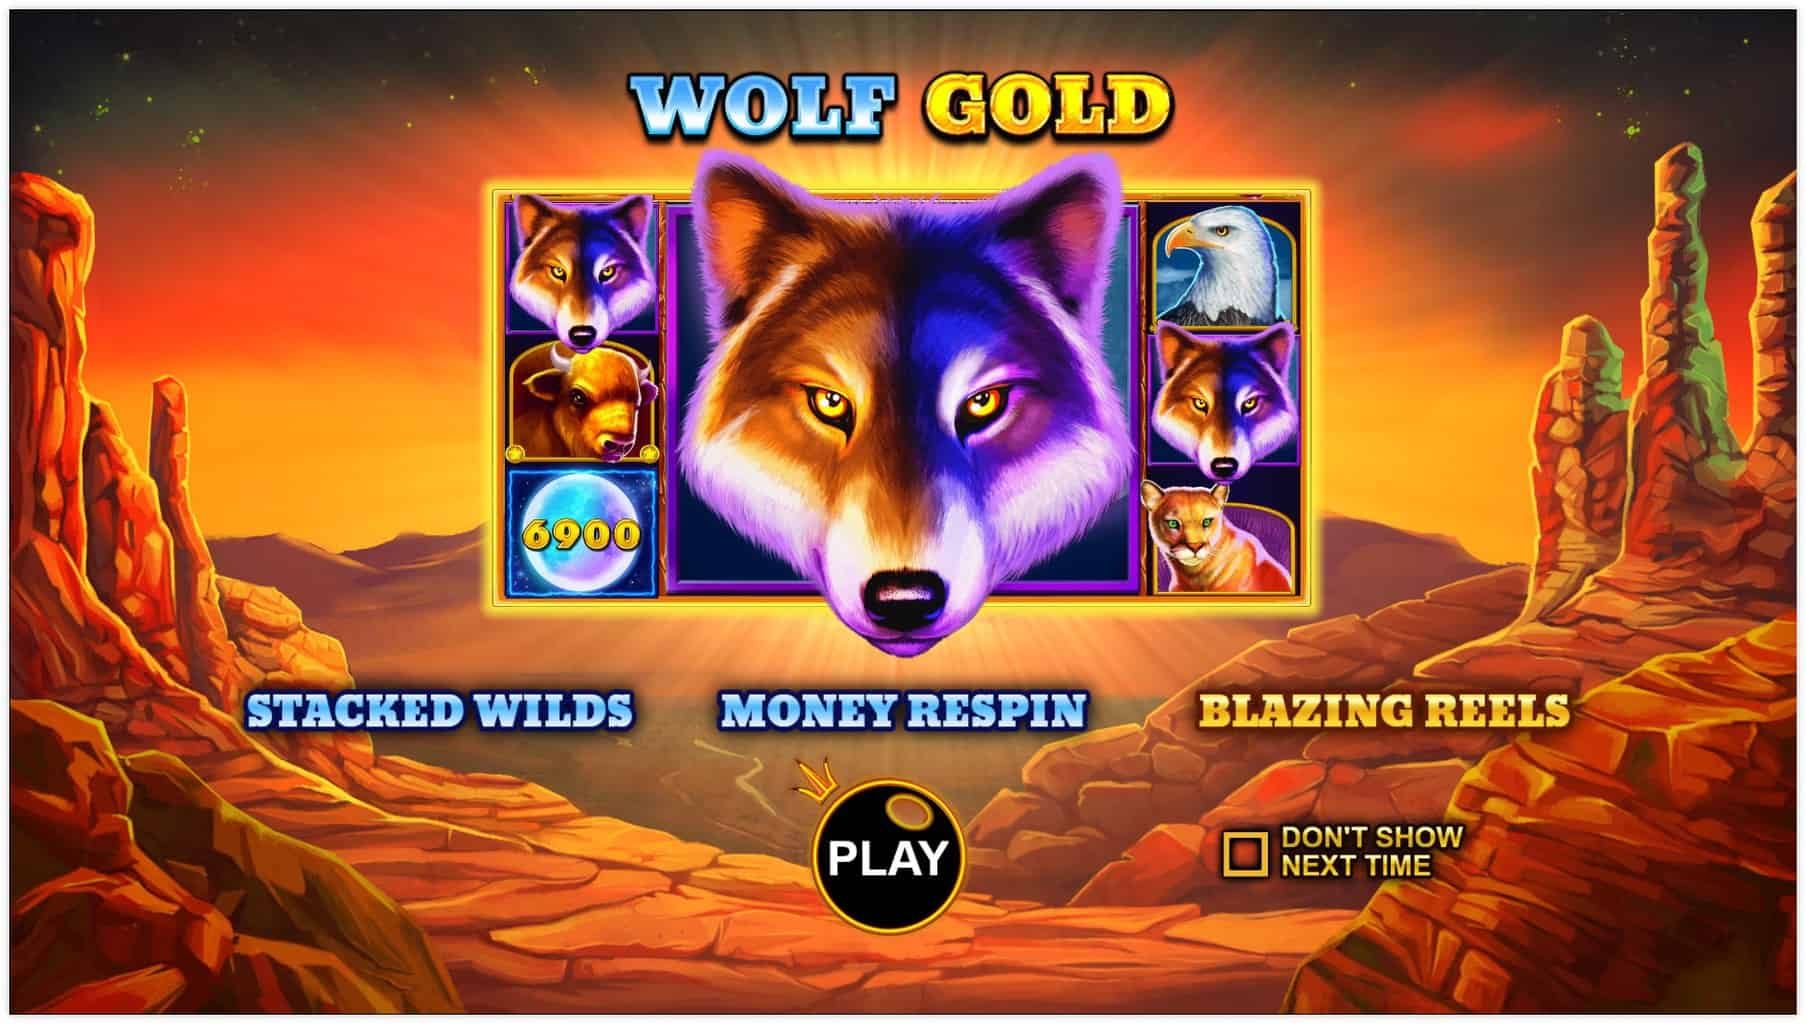 pragmatic play - wolf gold - rules - blazing reels - casinogroundsdotcom